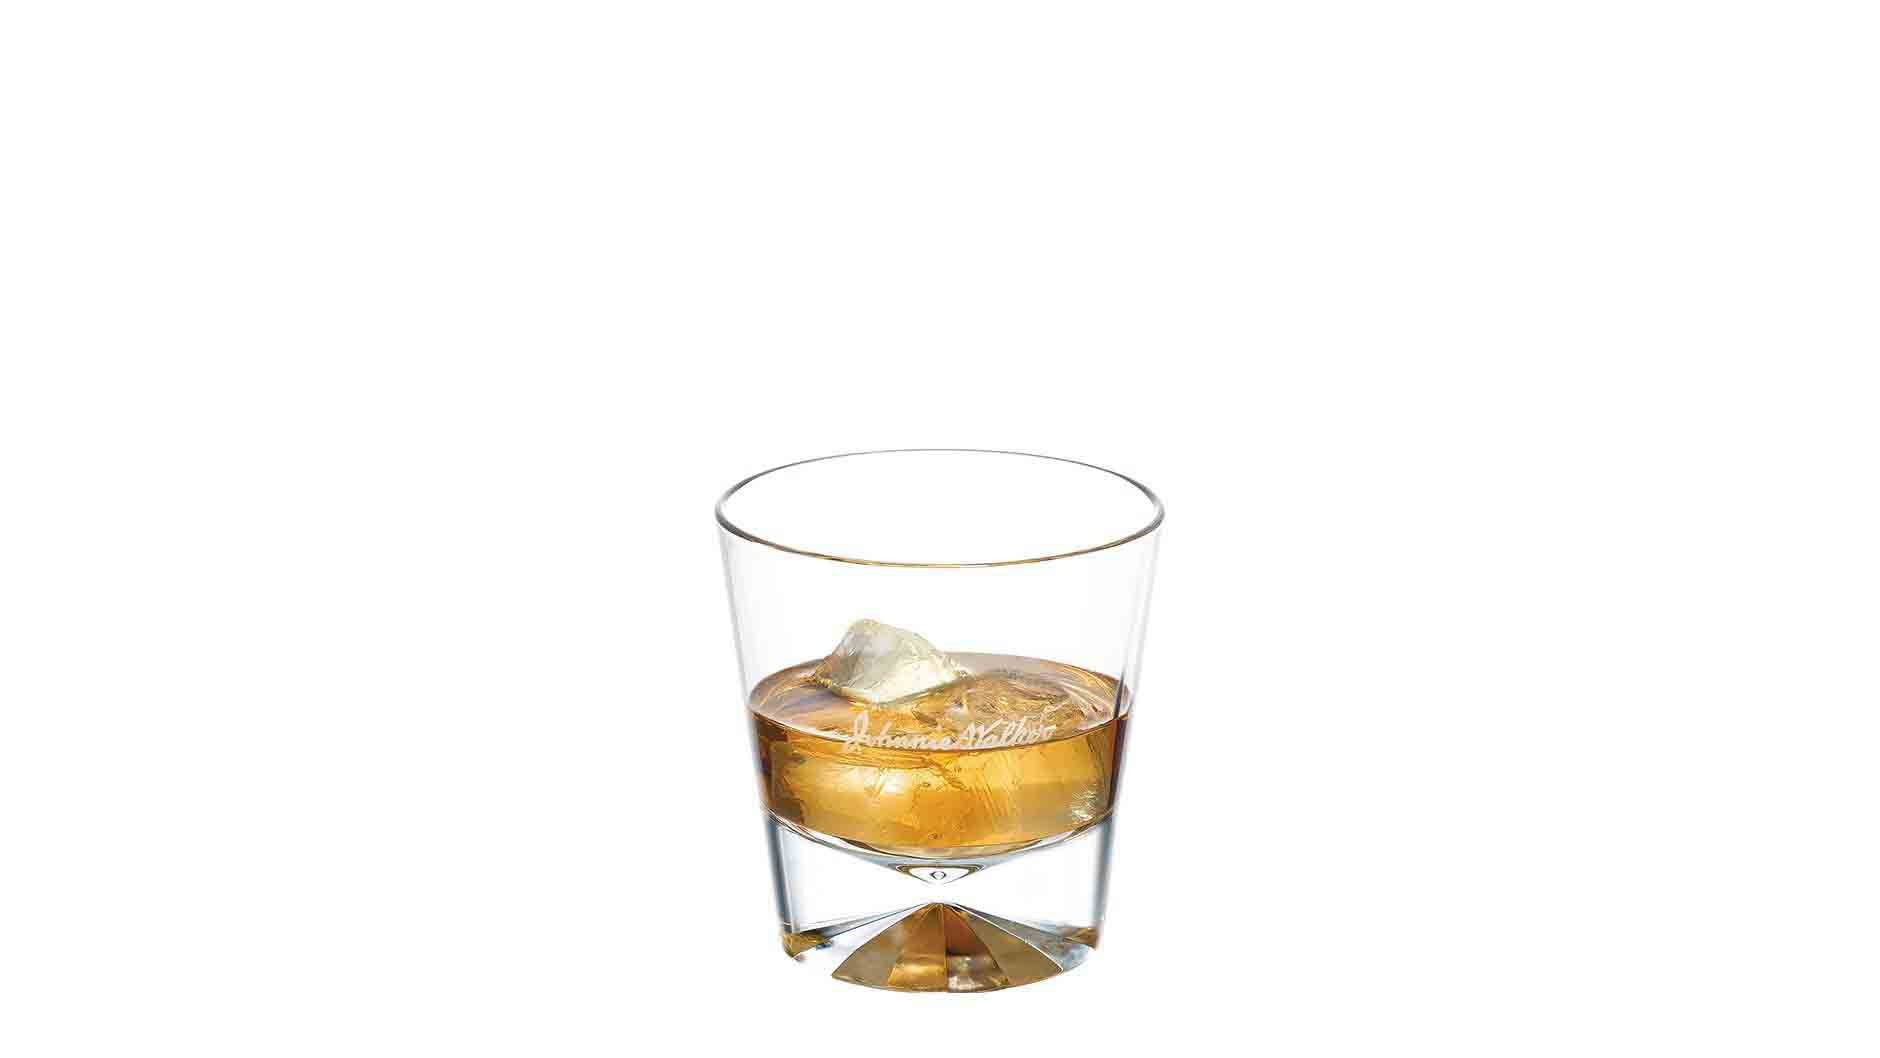 Johnnie Walker Black Label on the Rocks in a tumbler